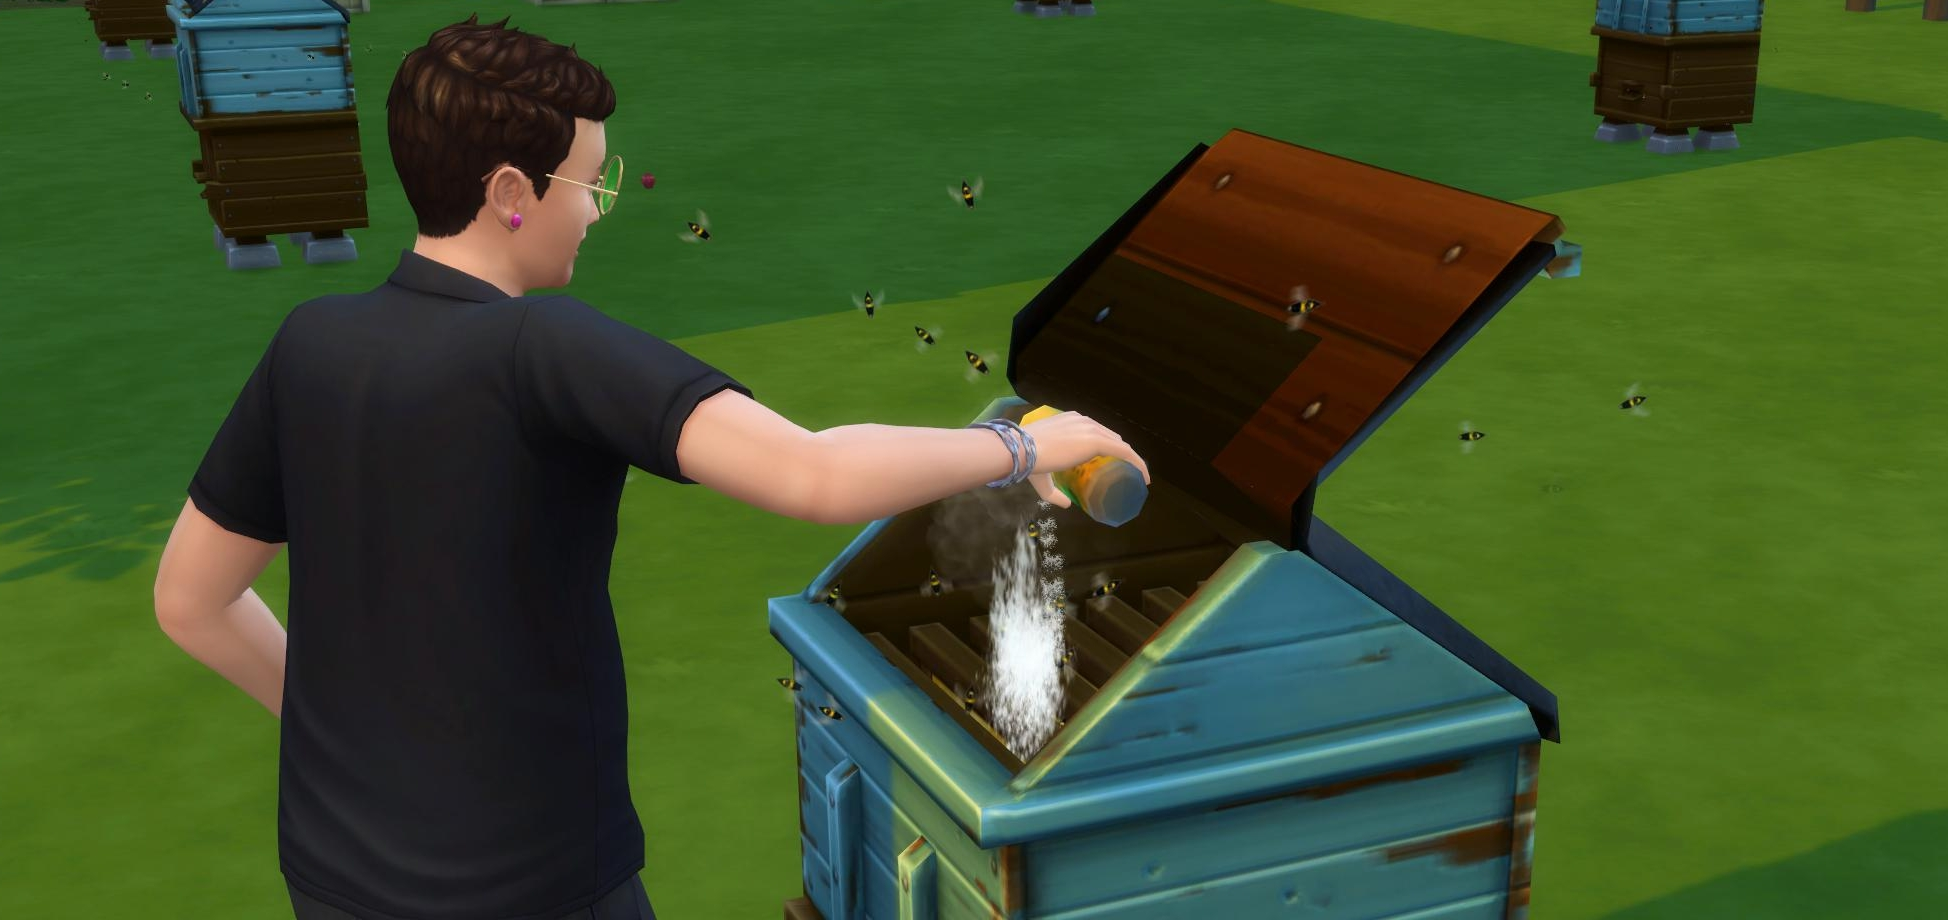 Mite treatment for bees in The Sims 4 Seasons